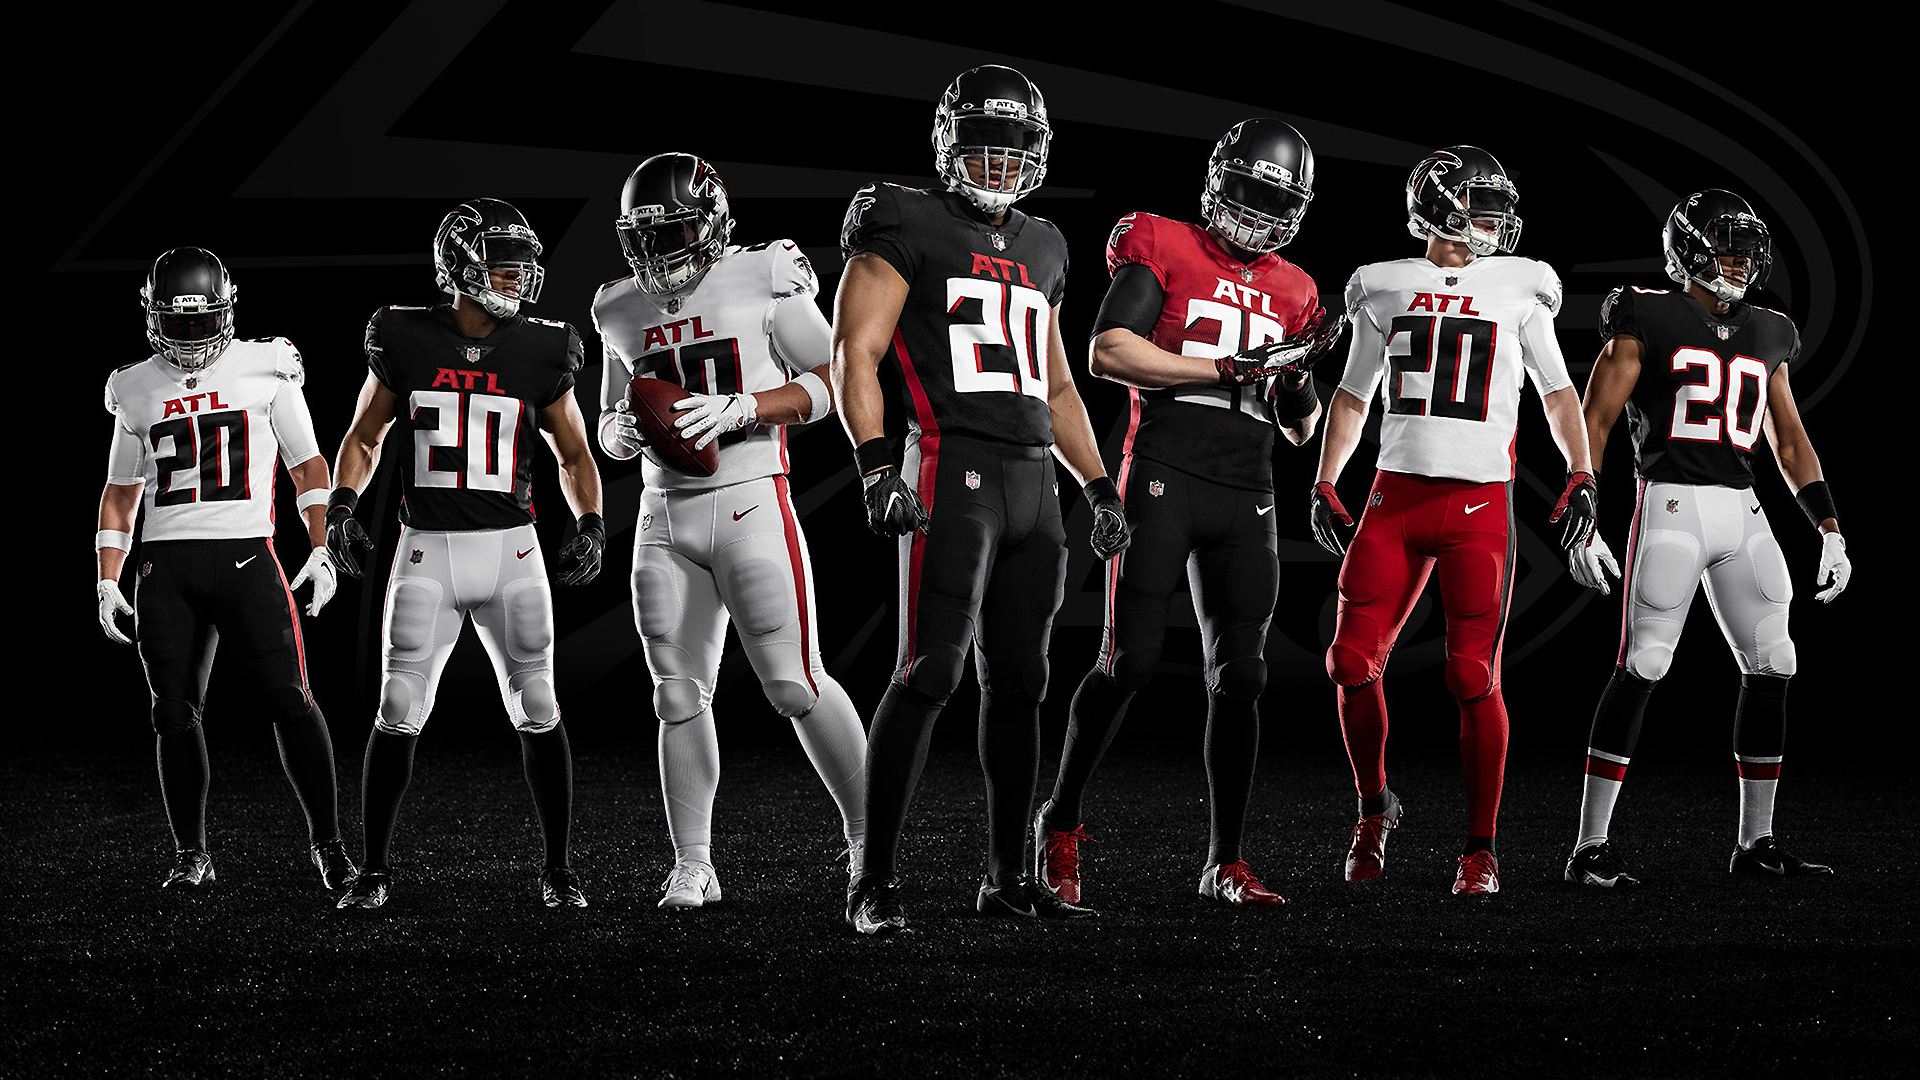 Falcons release new uniforms and NFL fans have jokes | Sporting News